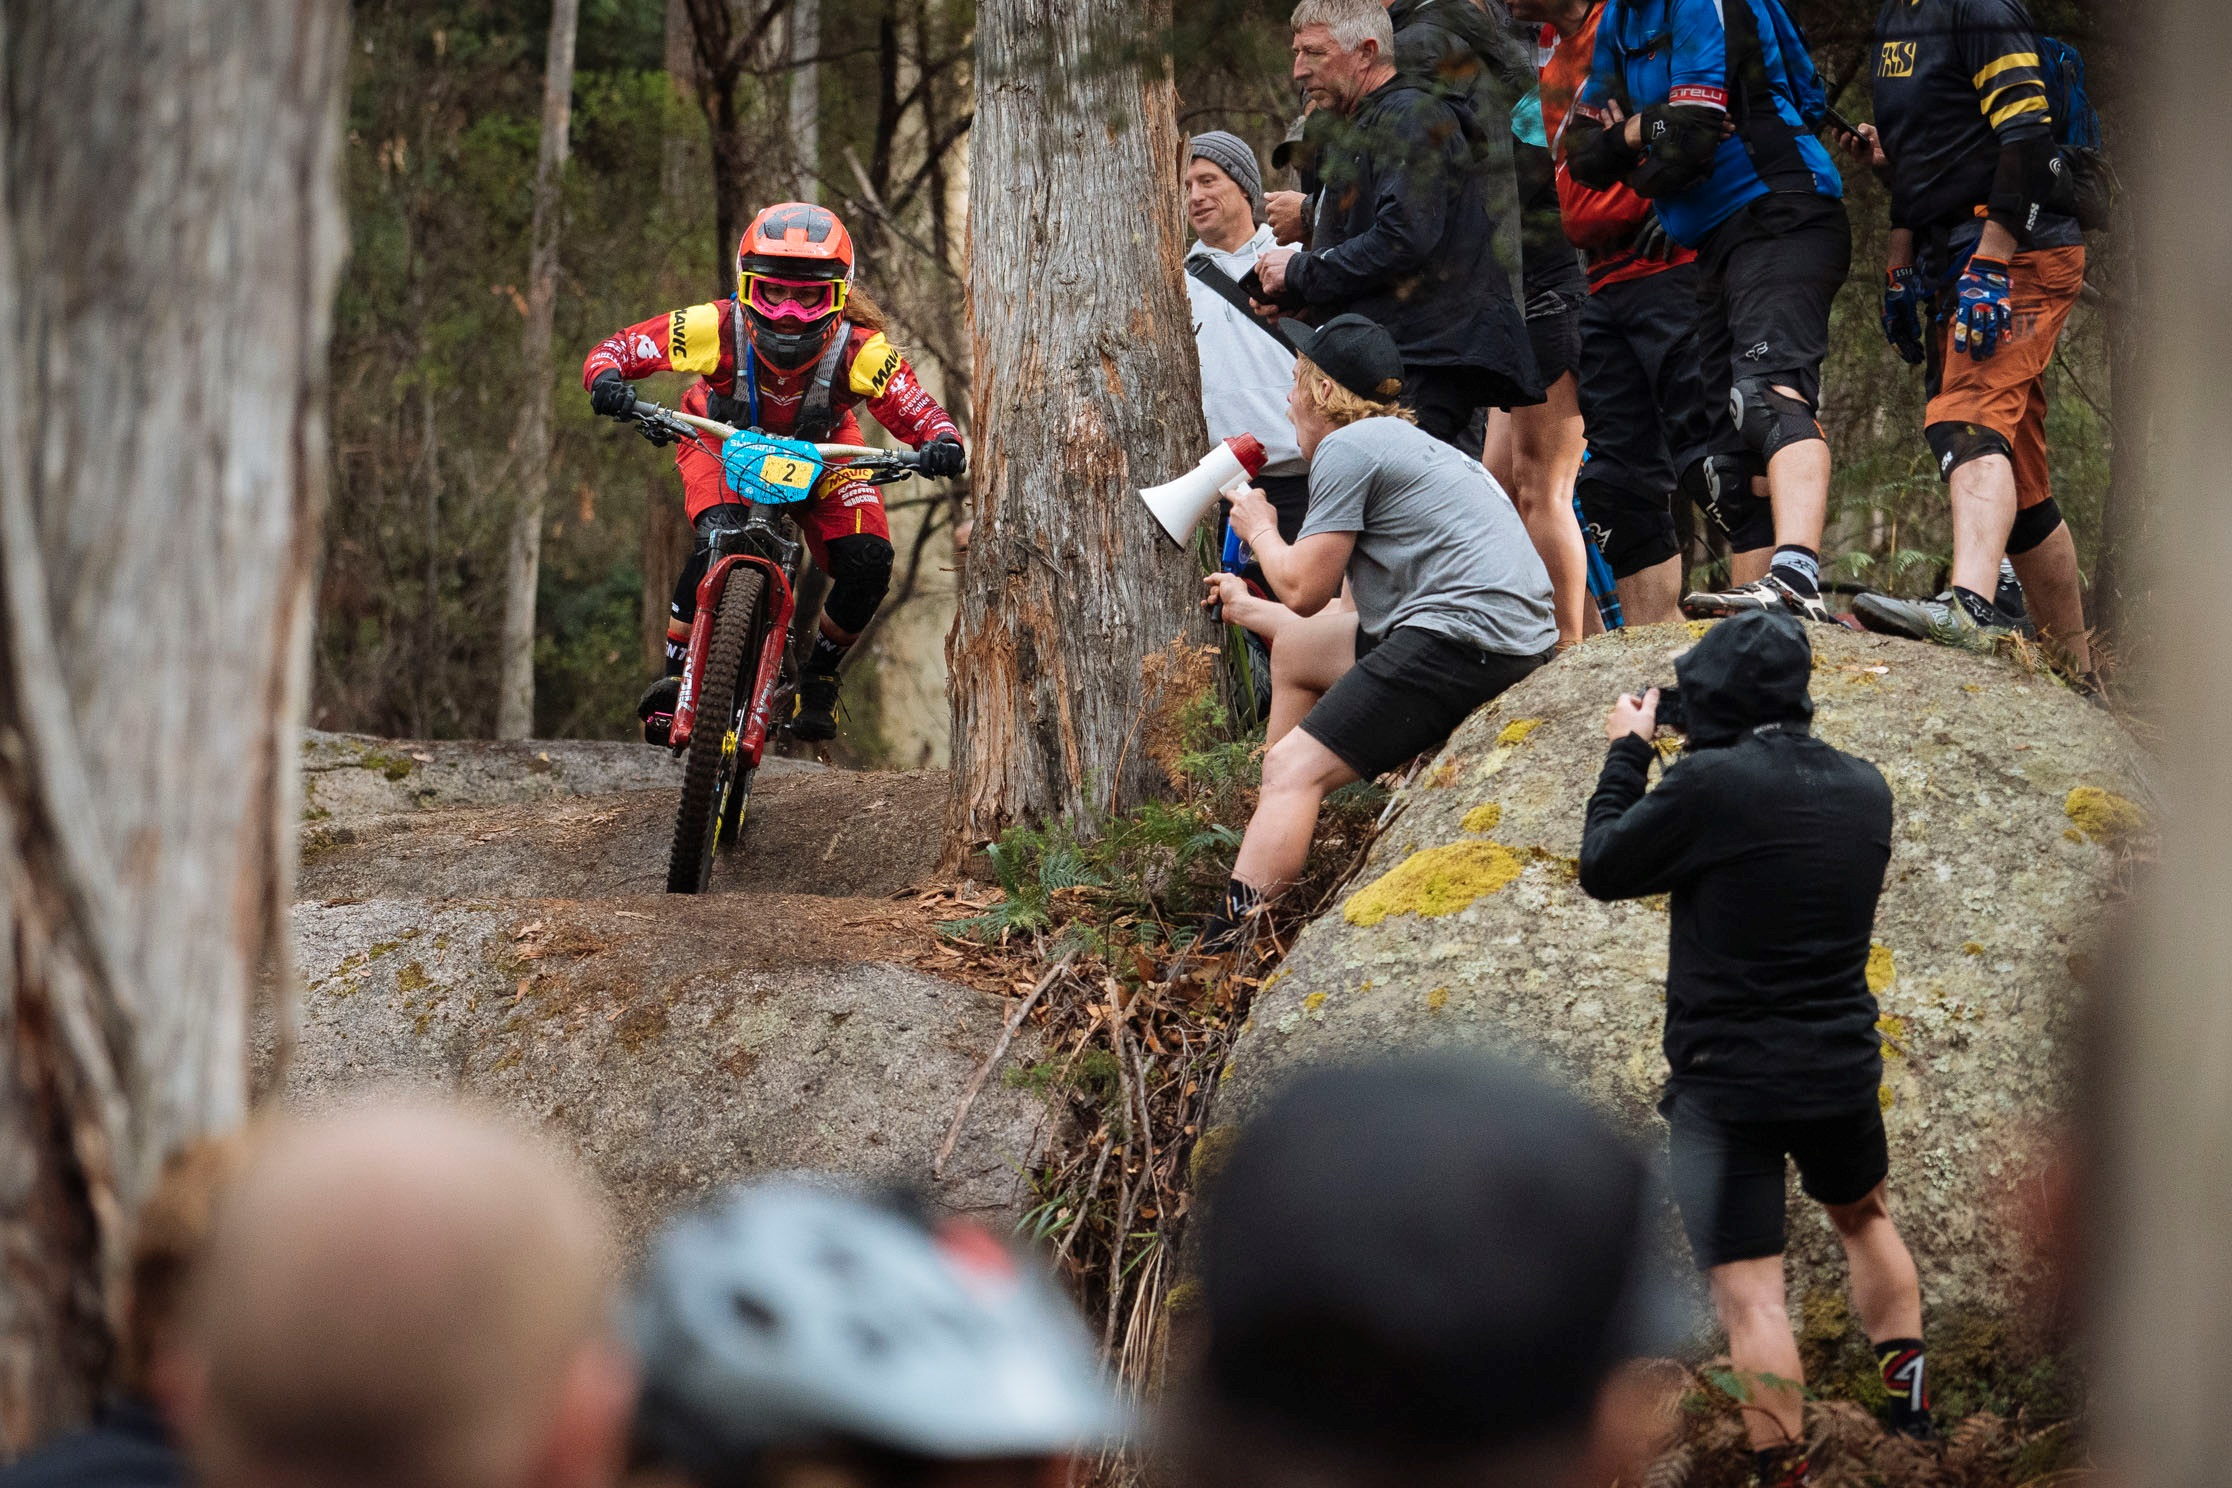 Conquer the Tech - Learn all the skills needed to stay honed & confident on the trails.